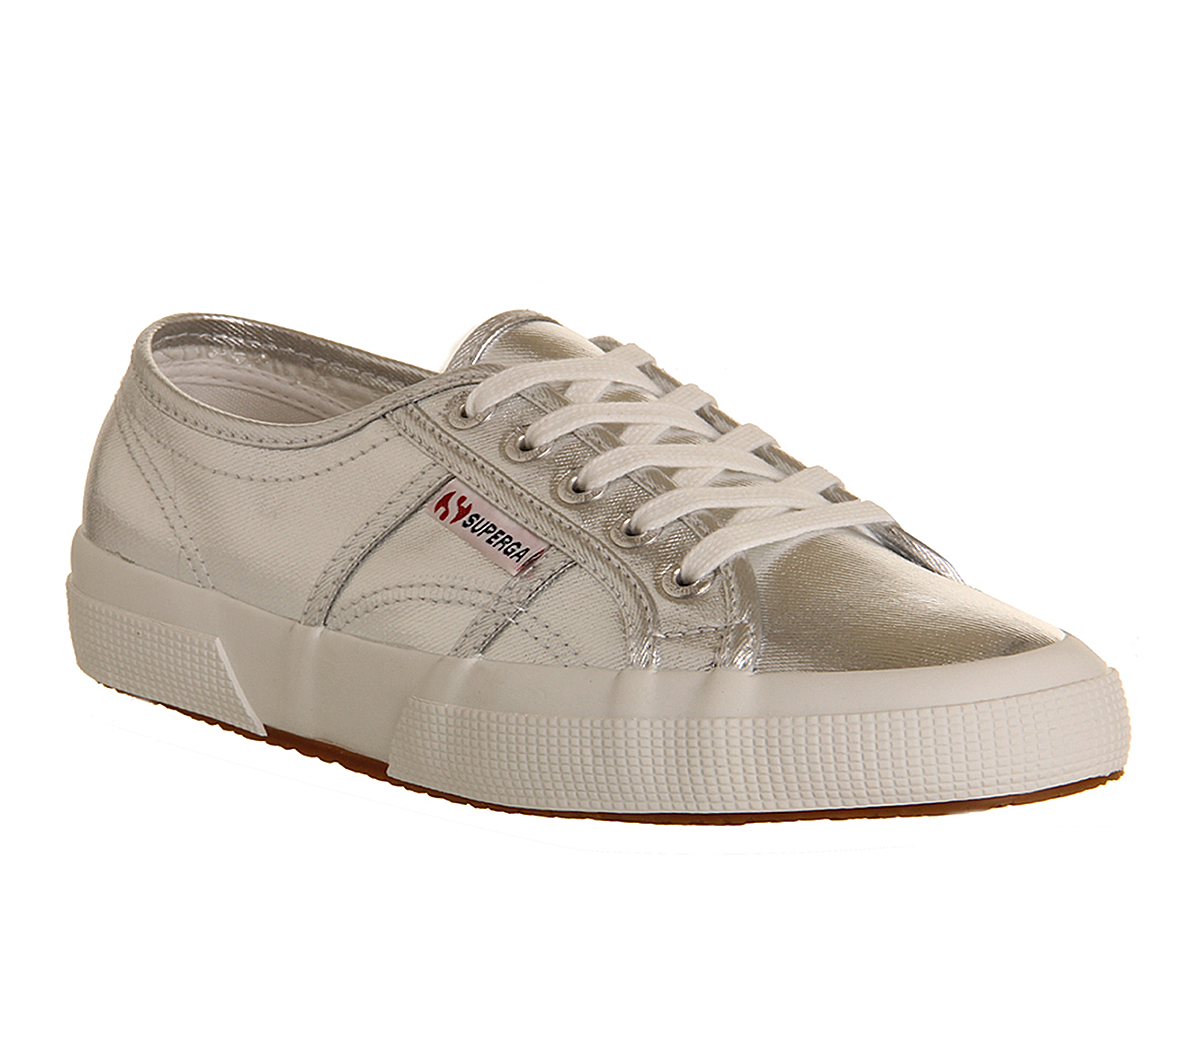 womens superga 2750 trainers silver cometu trainers shoes ebay. Black Bedroom Furniture Sets. Home Design Ideas